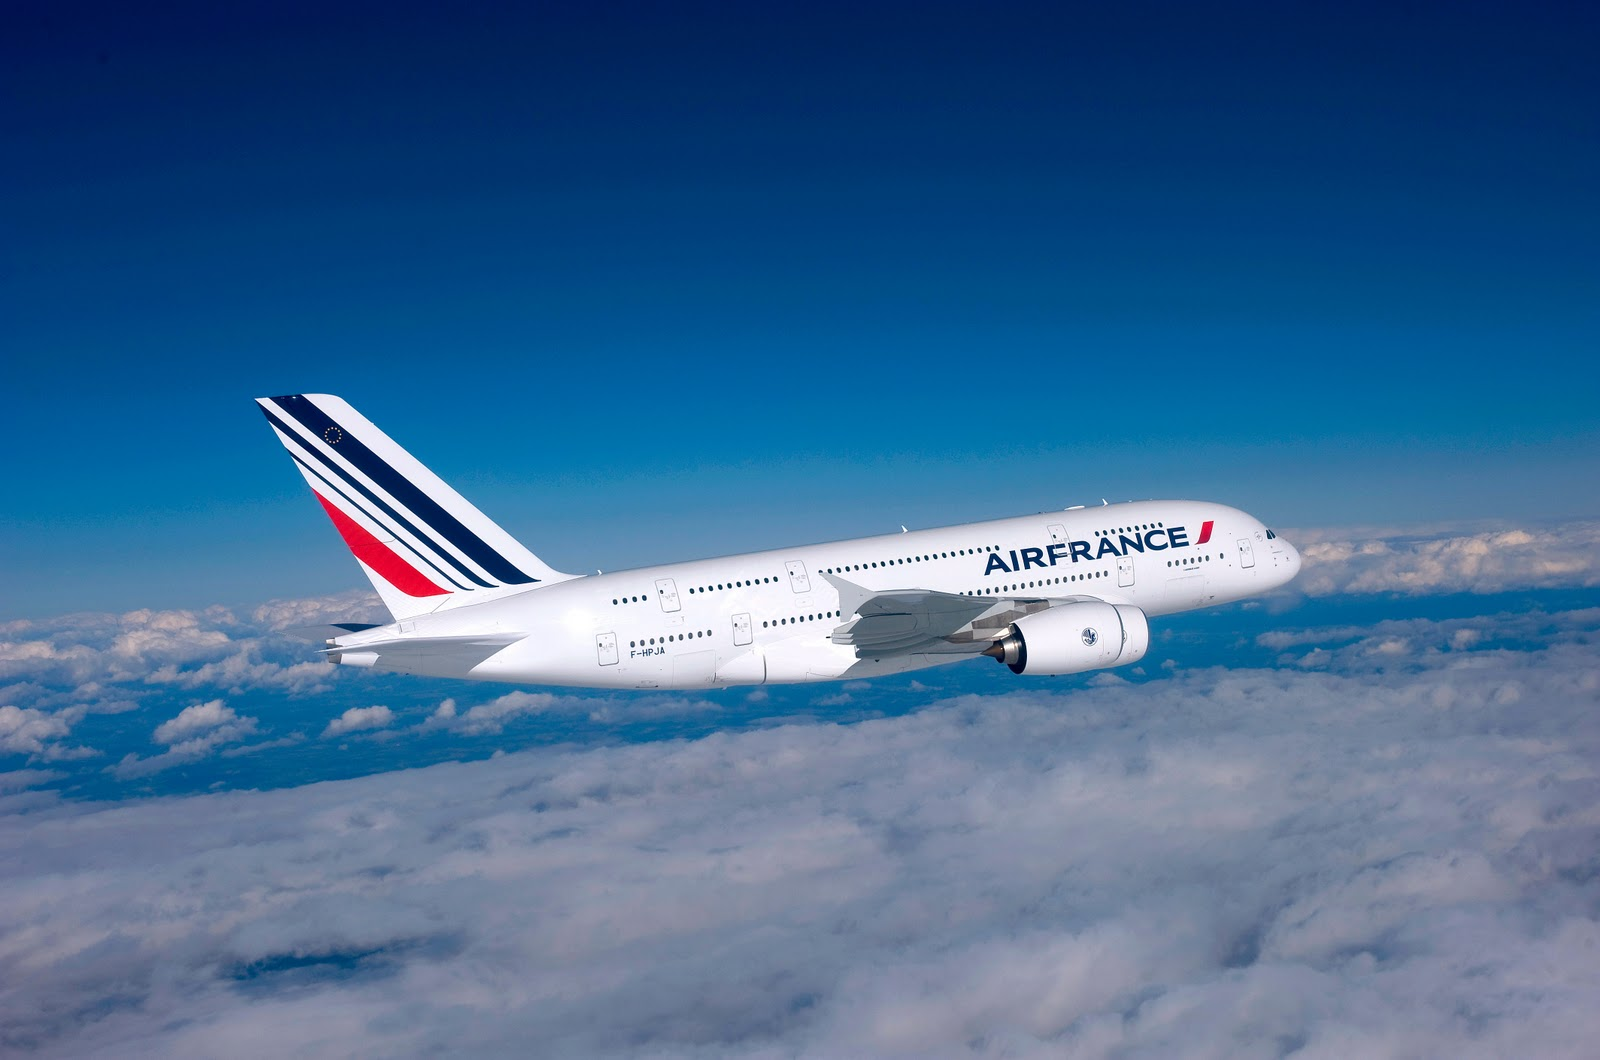 Wallpaper wallpaper a380 for Interieur d avion air france